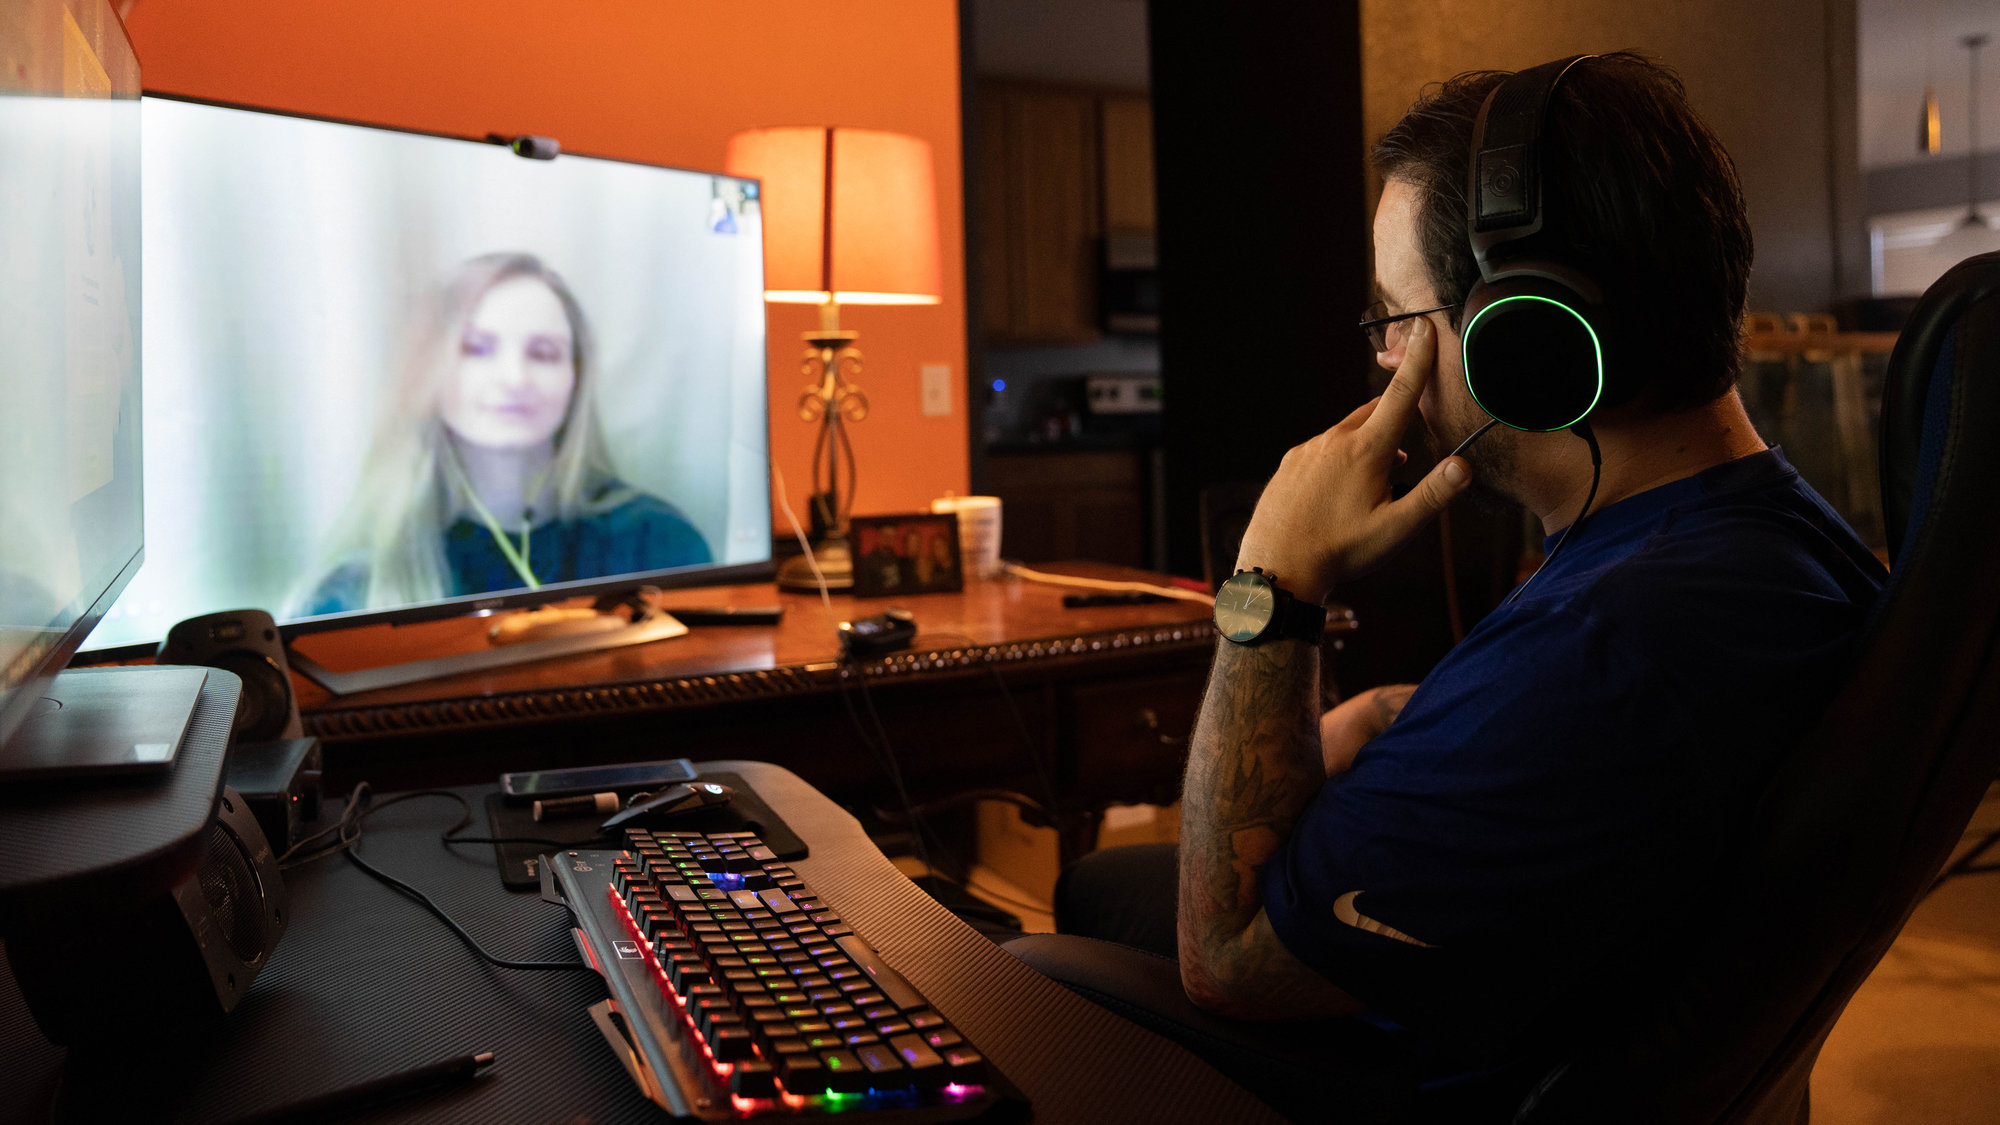 Mike April, who lives in Fort Worth, Texas, chats via online video with his wife, Heather April, who is incarcerated at Coffee Creek Correctional Facility in Oregon.